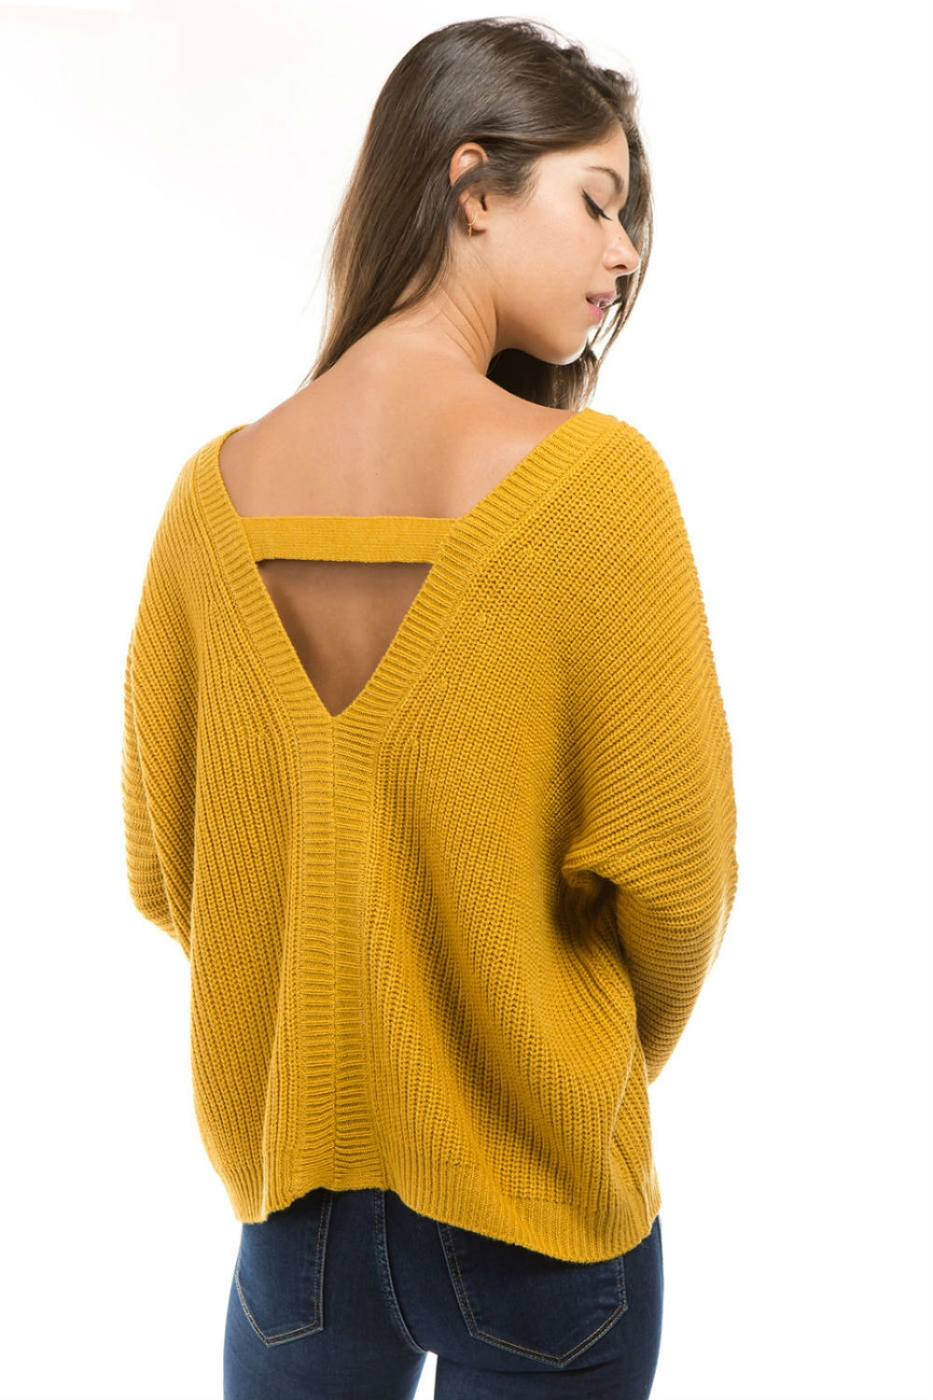 V NECK OPEN BACK SWEATER - orangeshine.com